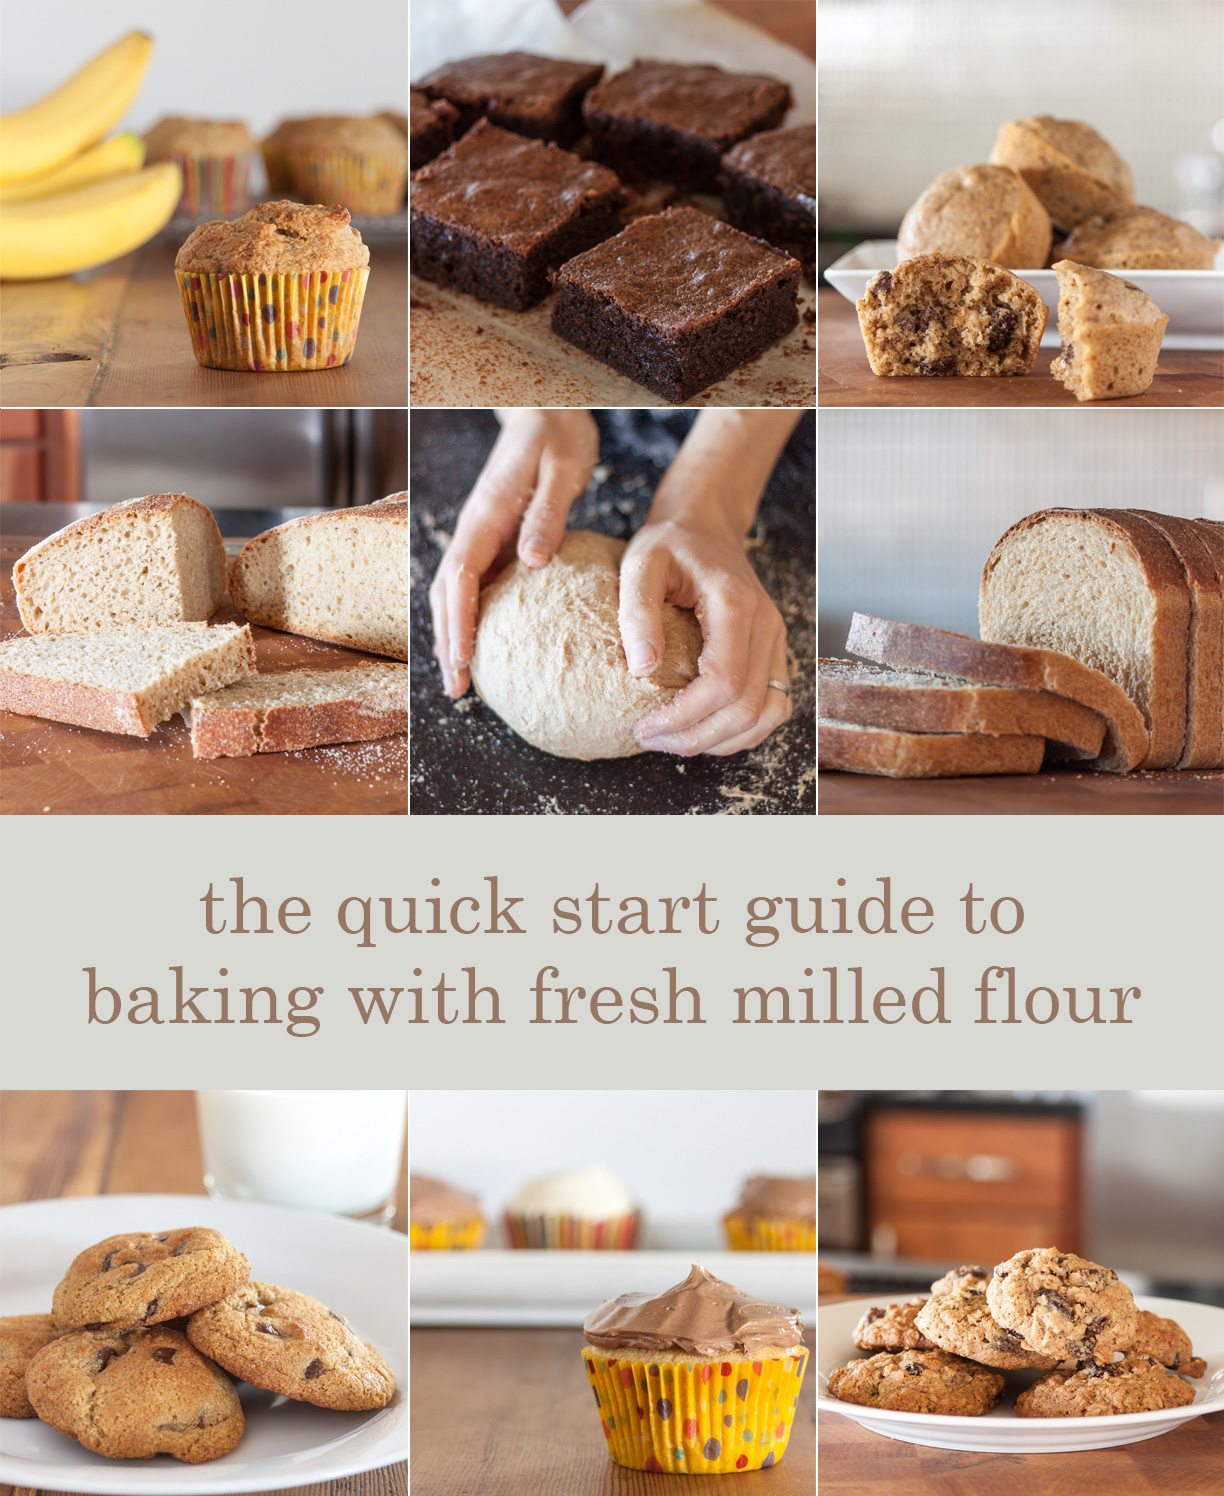 The quick start guide to baking with fresh milled flour